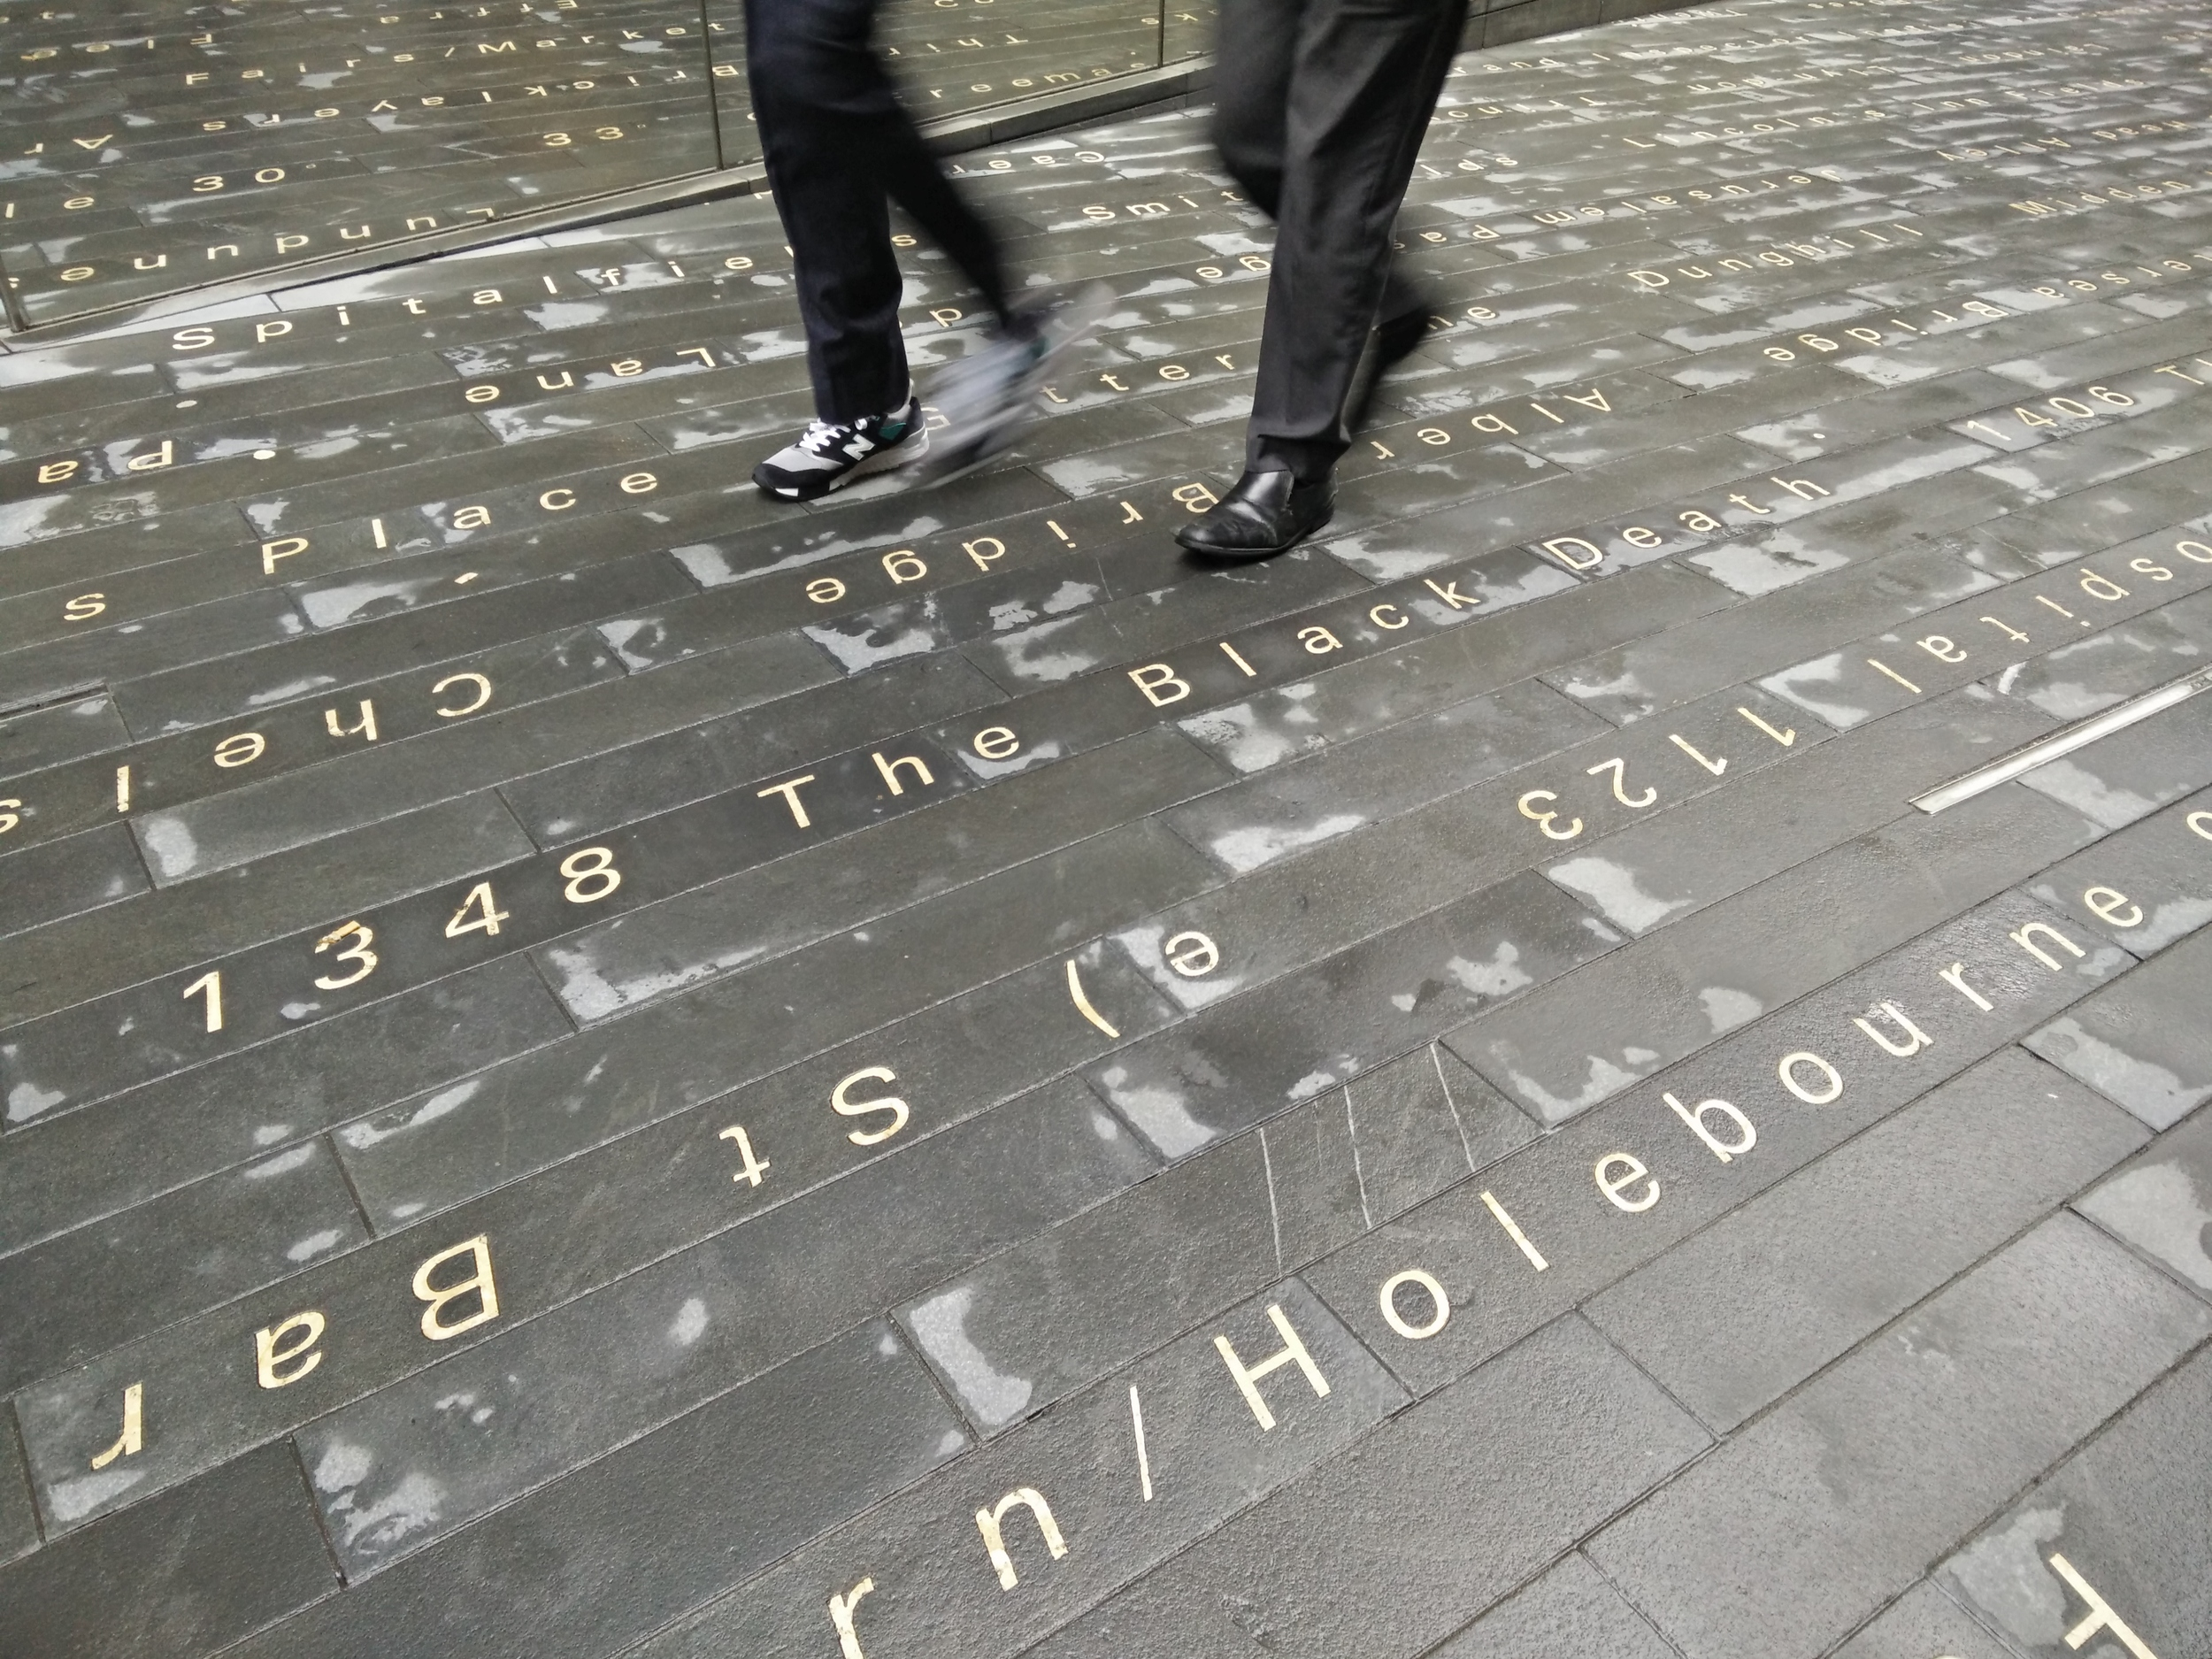 During daytime, the text steals all the attention. Light however plays an important role in the work, installed both as stripes on the pavement and as a backlit, wall sized picture of the moon's surface - a landscape that has stayed the same while London has changed over the centuries.